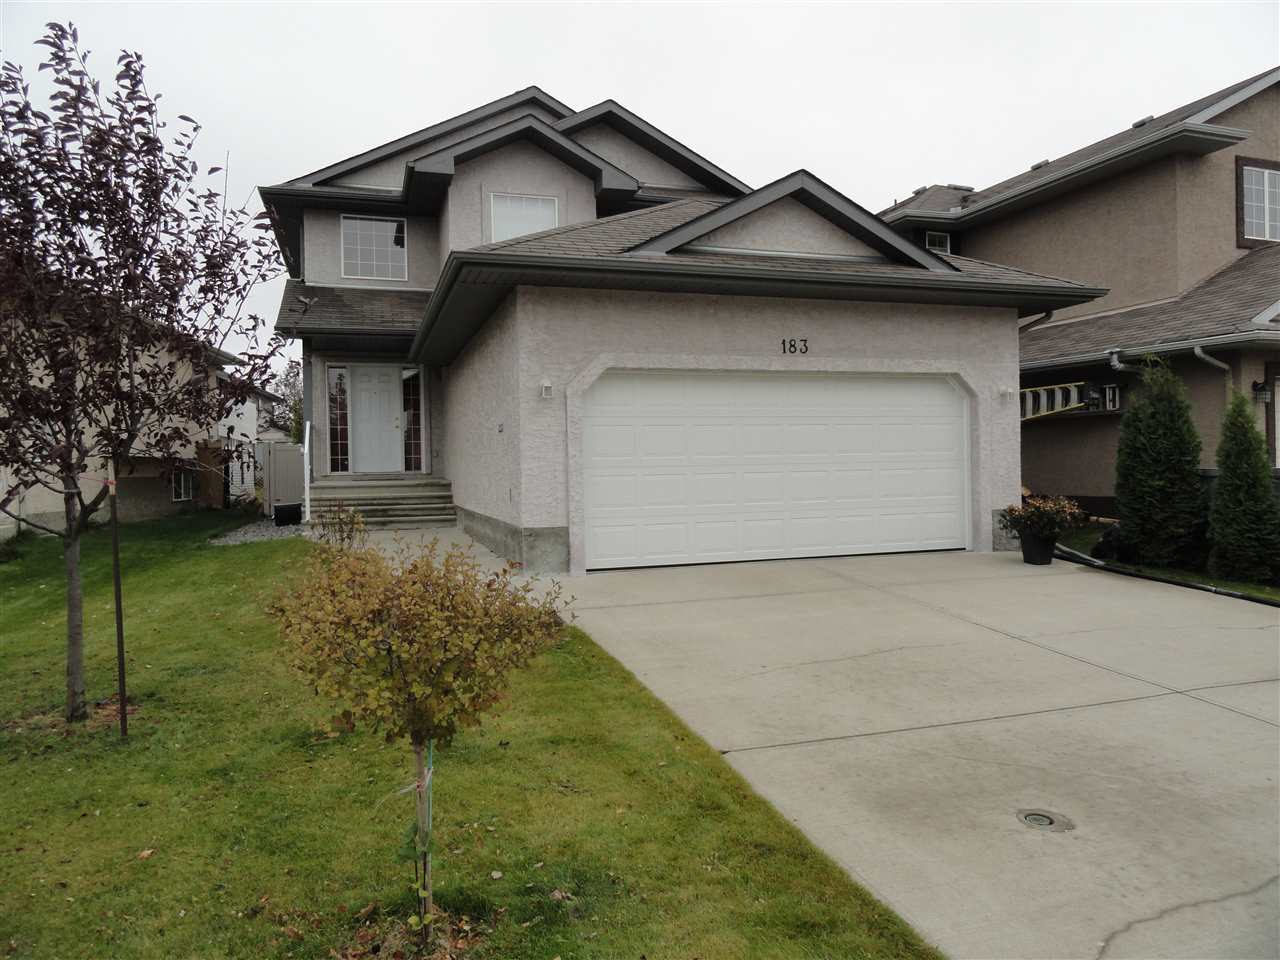 Main Photo: 183 Castle Drive in Edmonton: Zone 27 House for sale : MLS® # E4085311